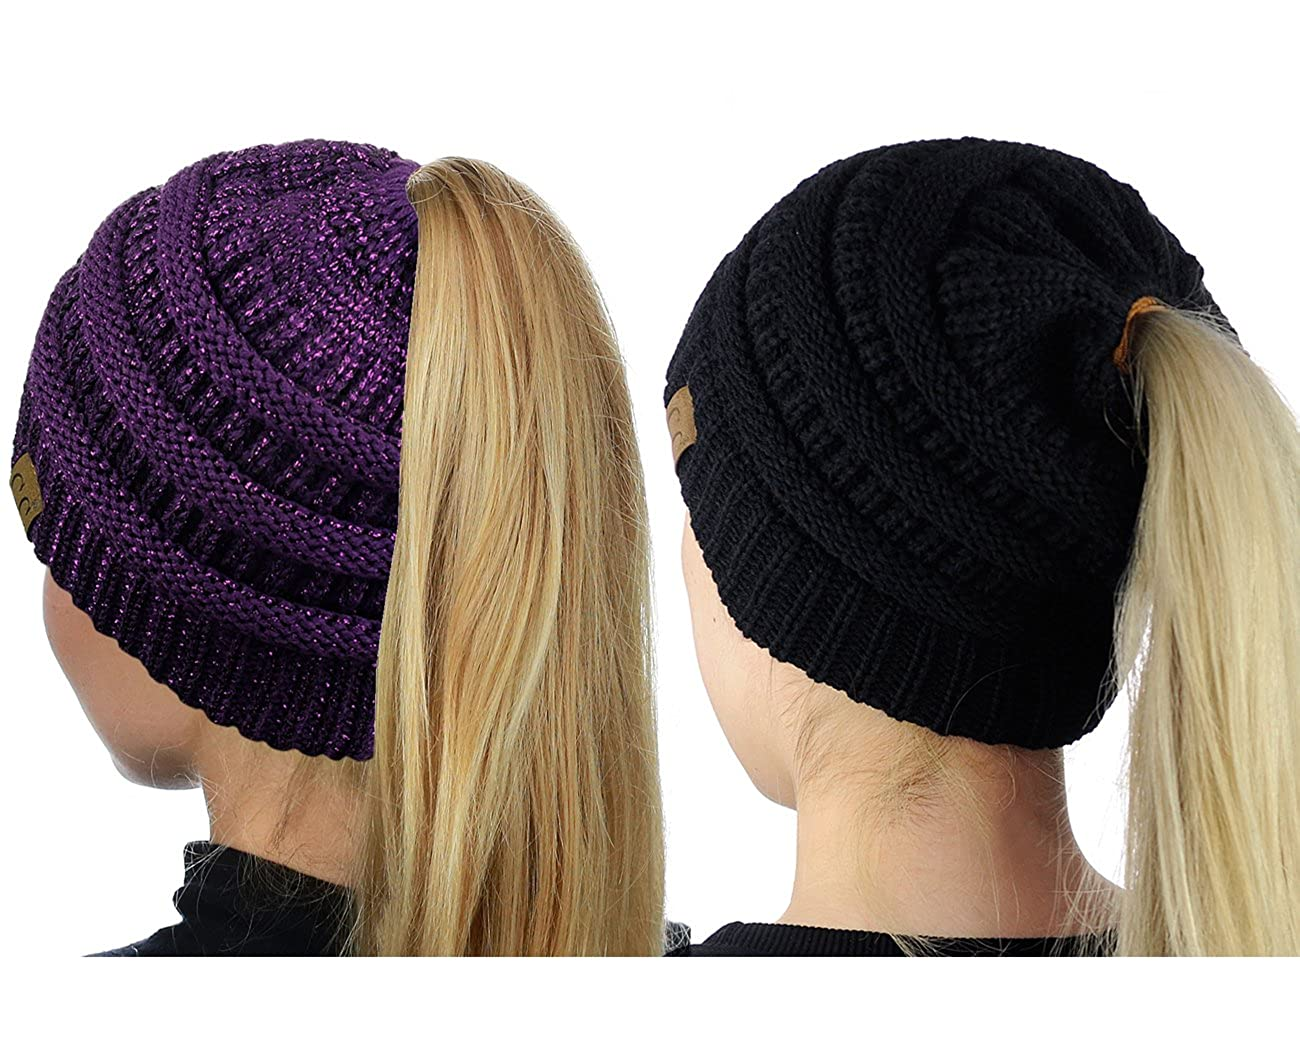 C.C BeanieTail Soft Stretch Cable Knit Messy High Bun Ponytail Beanie Hat, 2 Pack Black/Beige MB20A SET-BK/BG